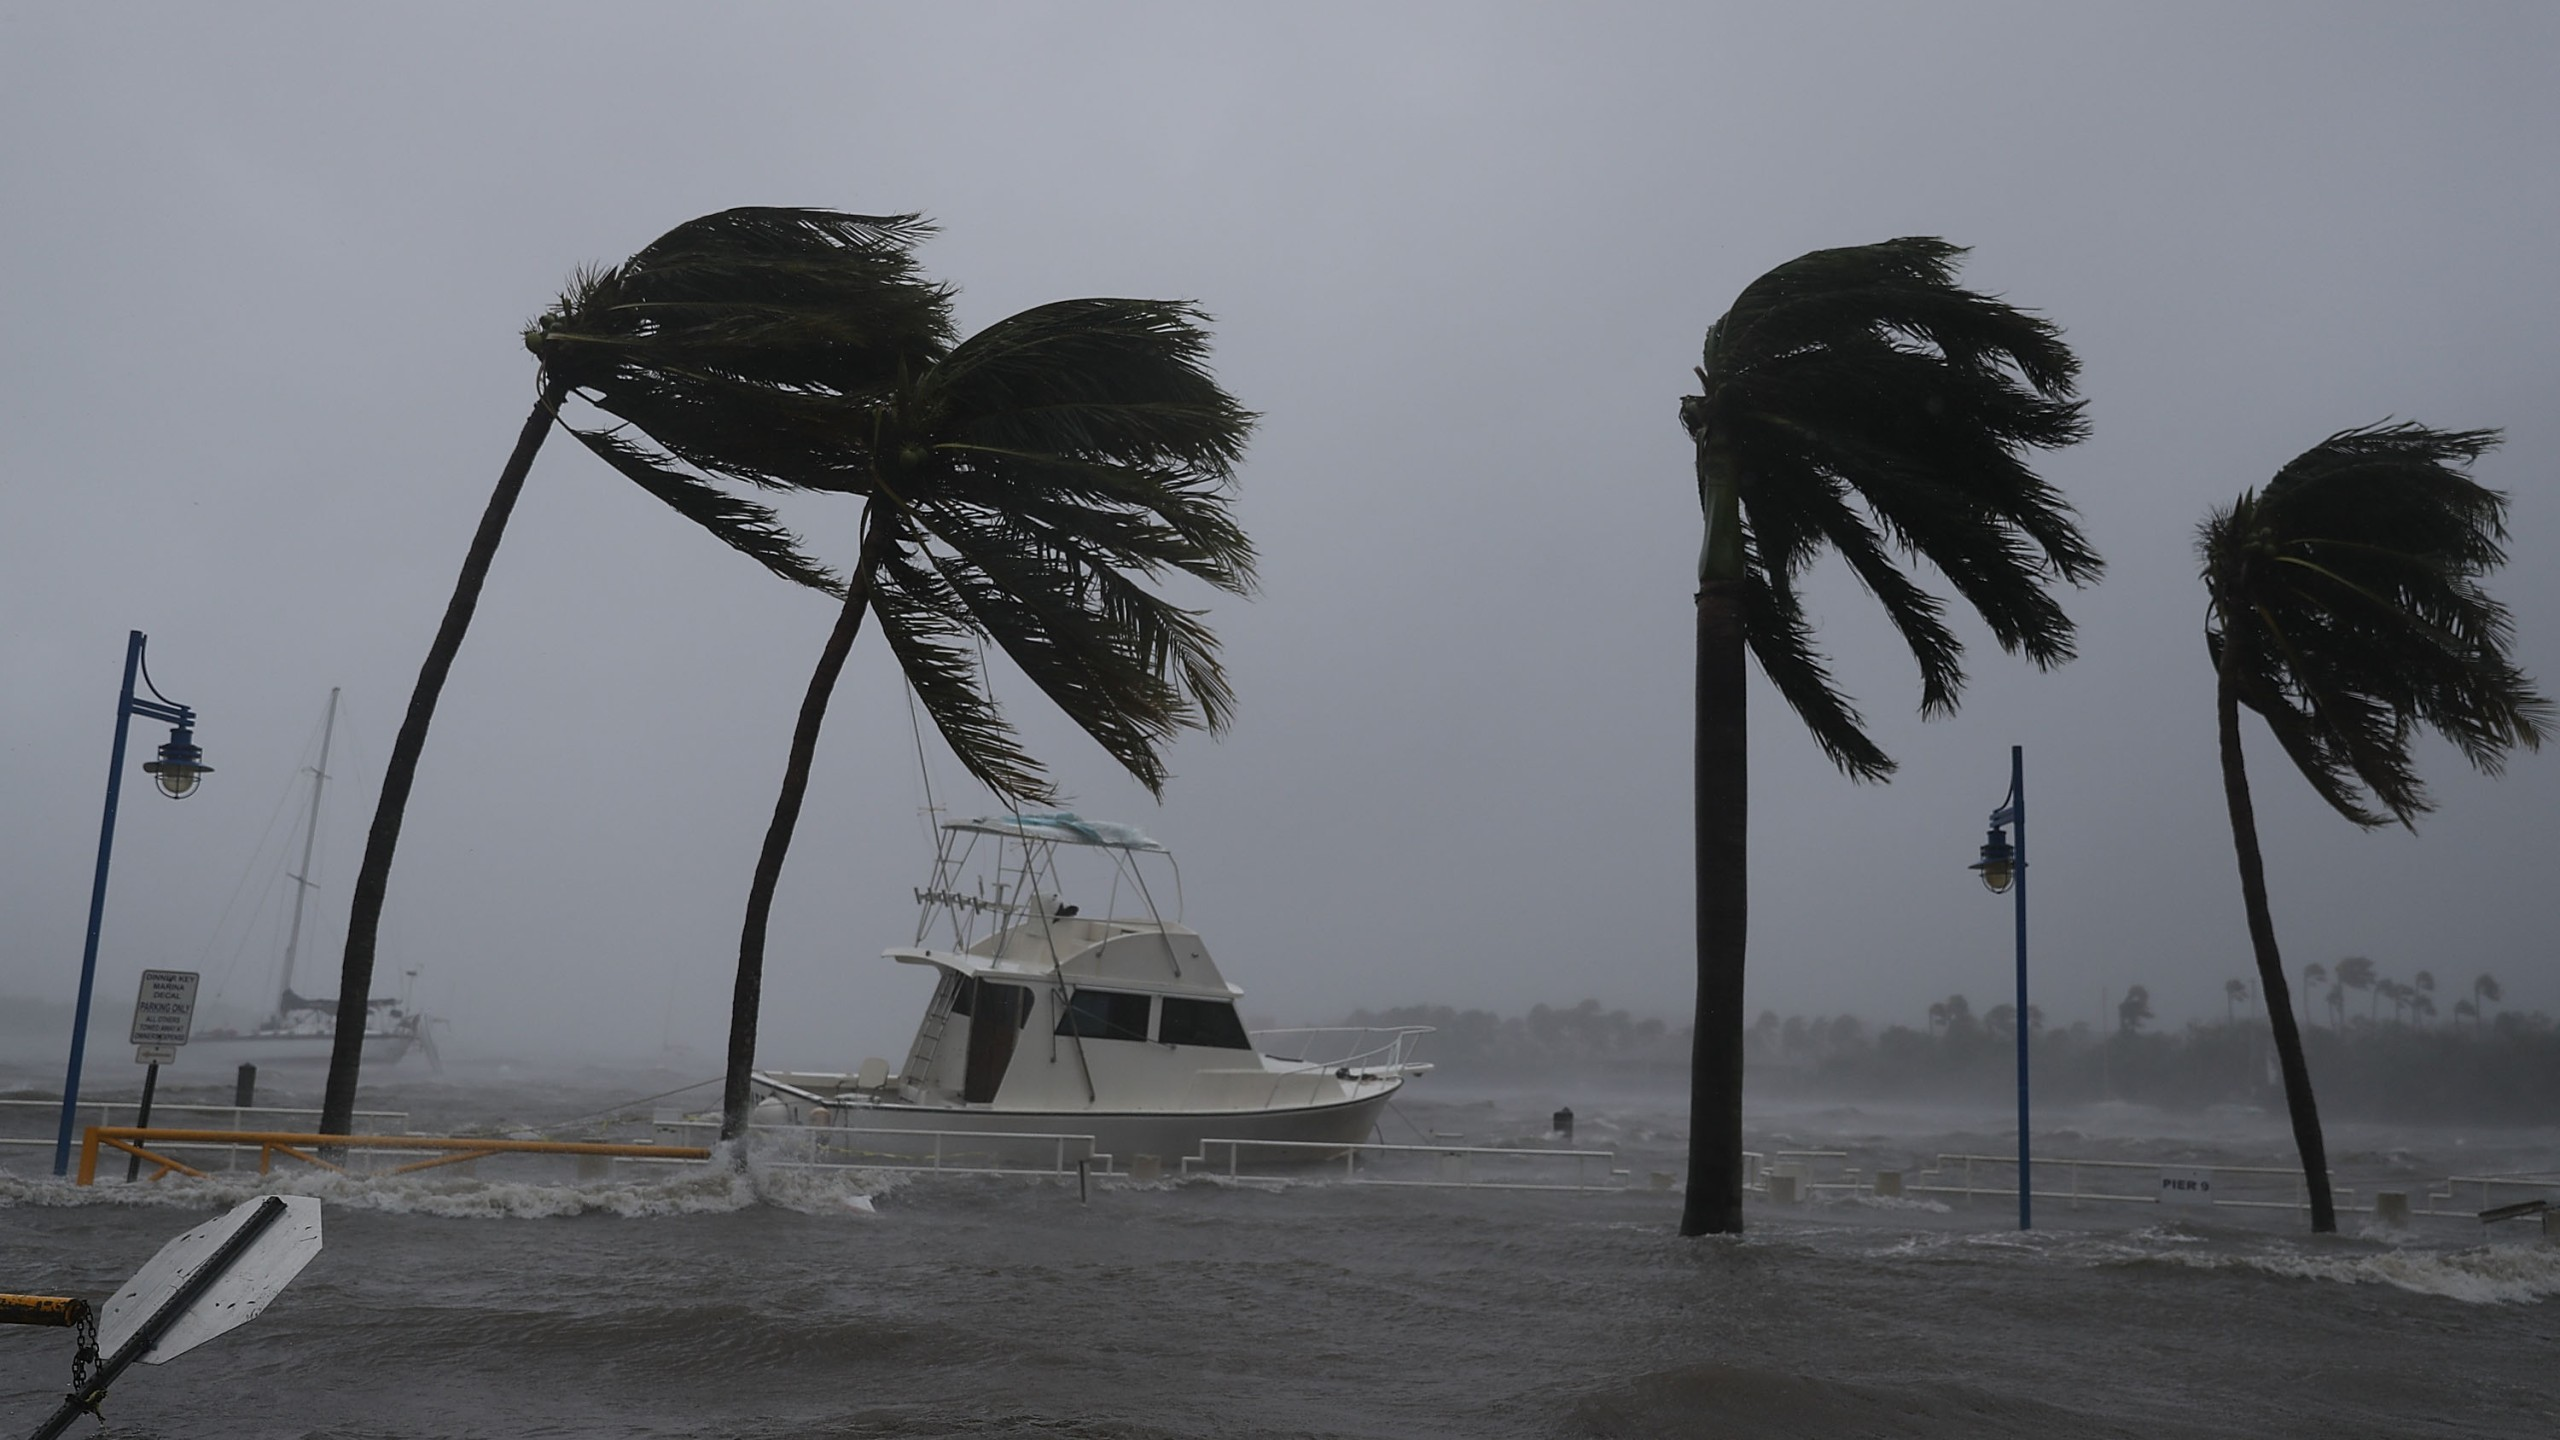 Boats ride out Hurricane Irma in Miami, Florida on Sept. 10, 2017. (Credit: Joe Raedle/Getty Images)